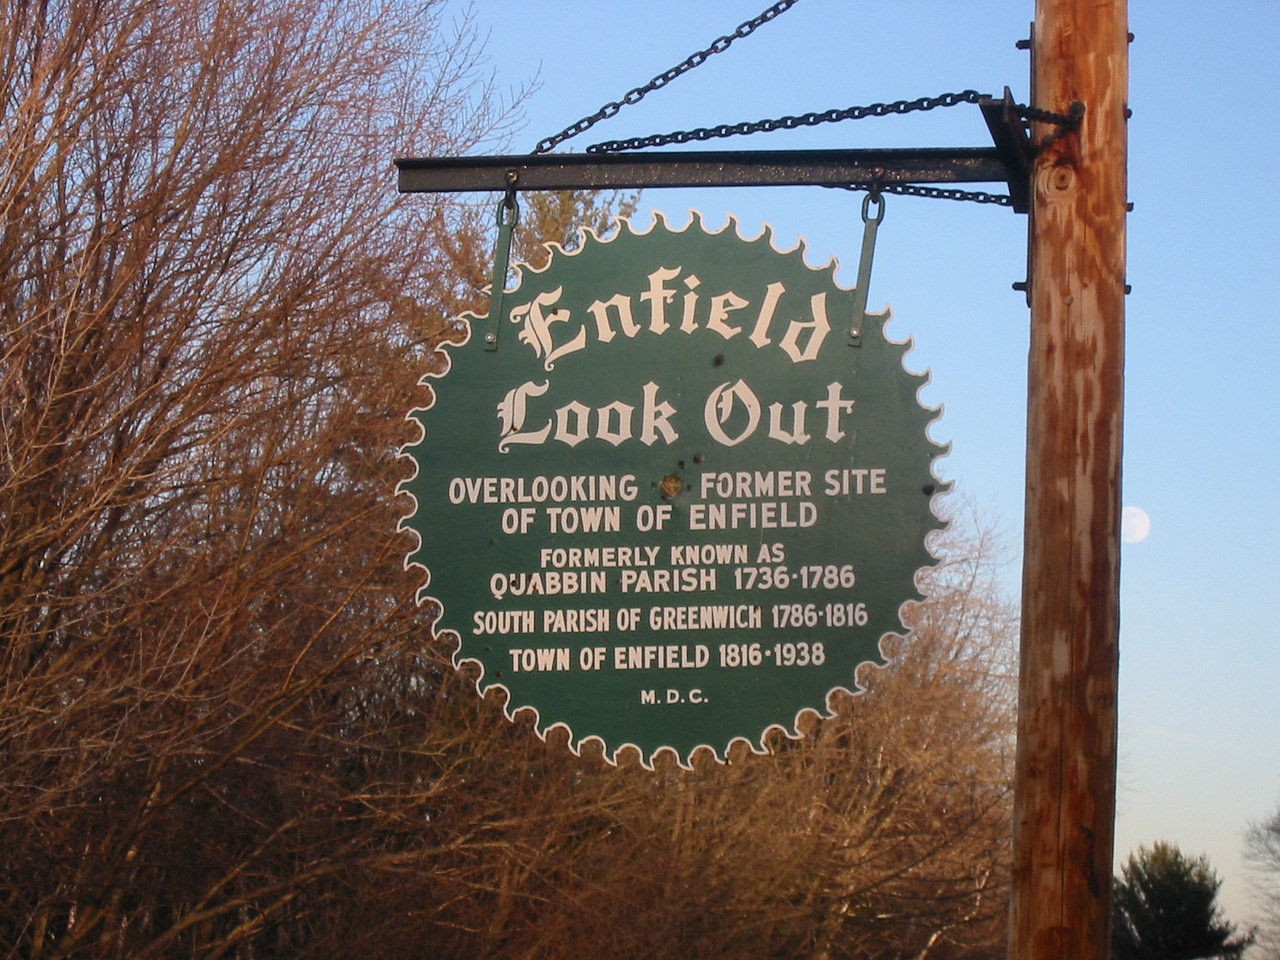 Enfield Look Out sign